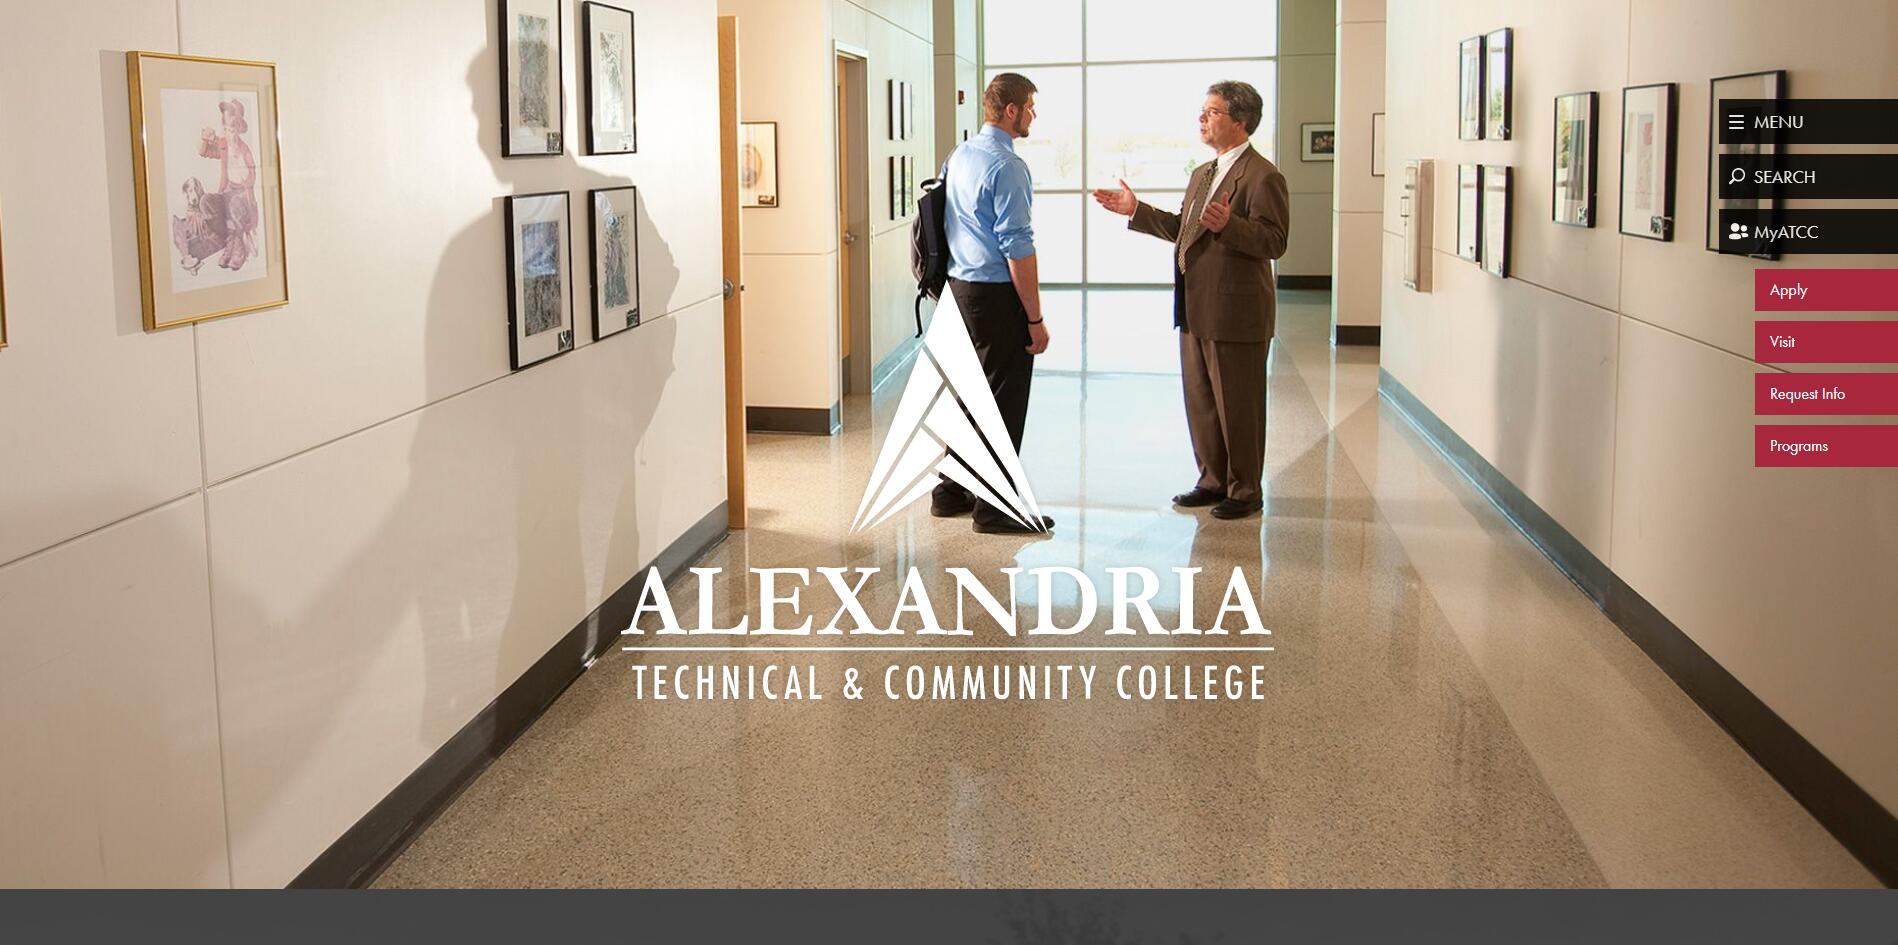 List of Community Colleges in Minnesota